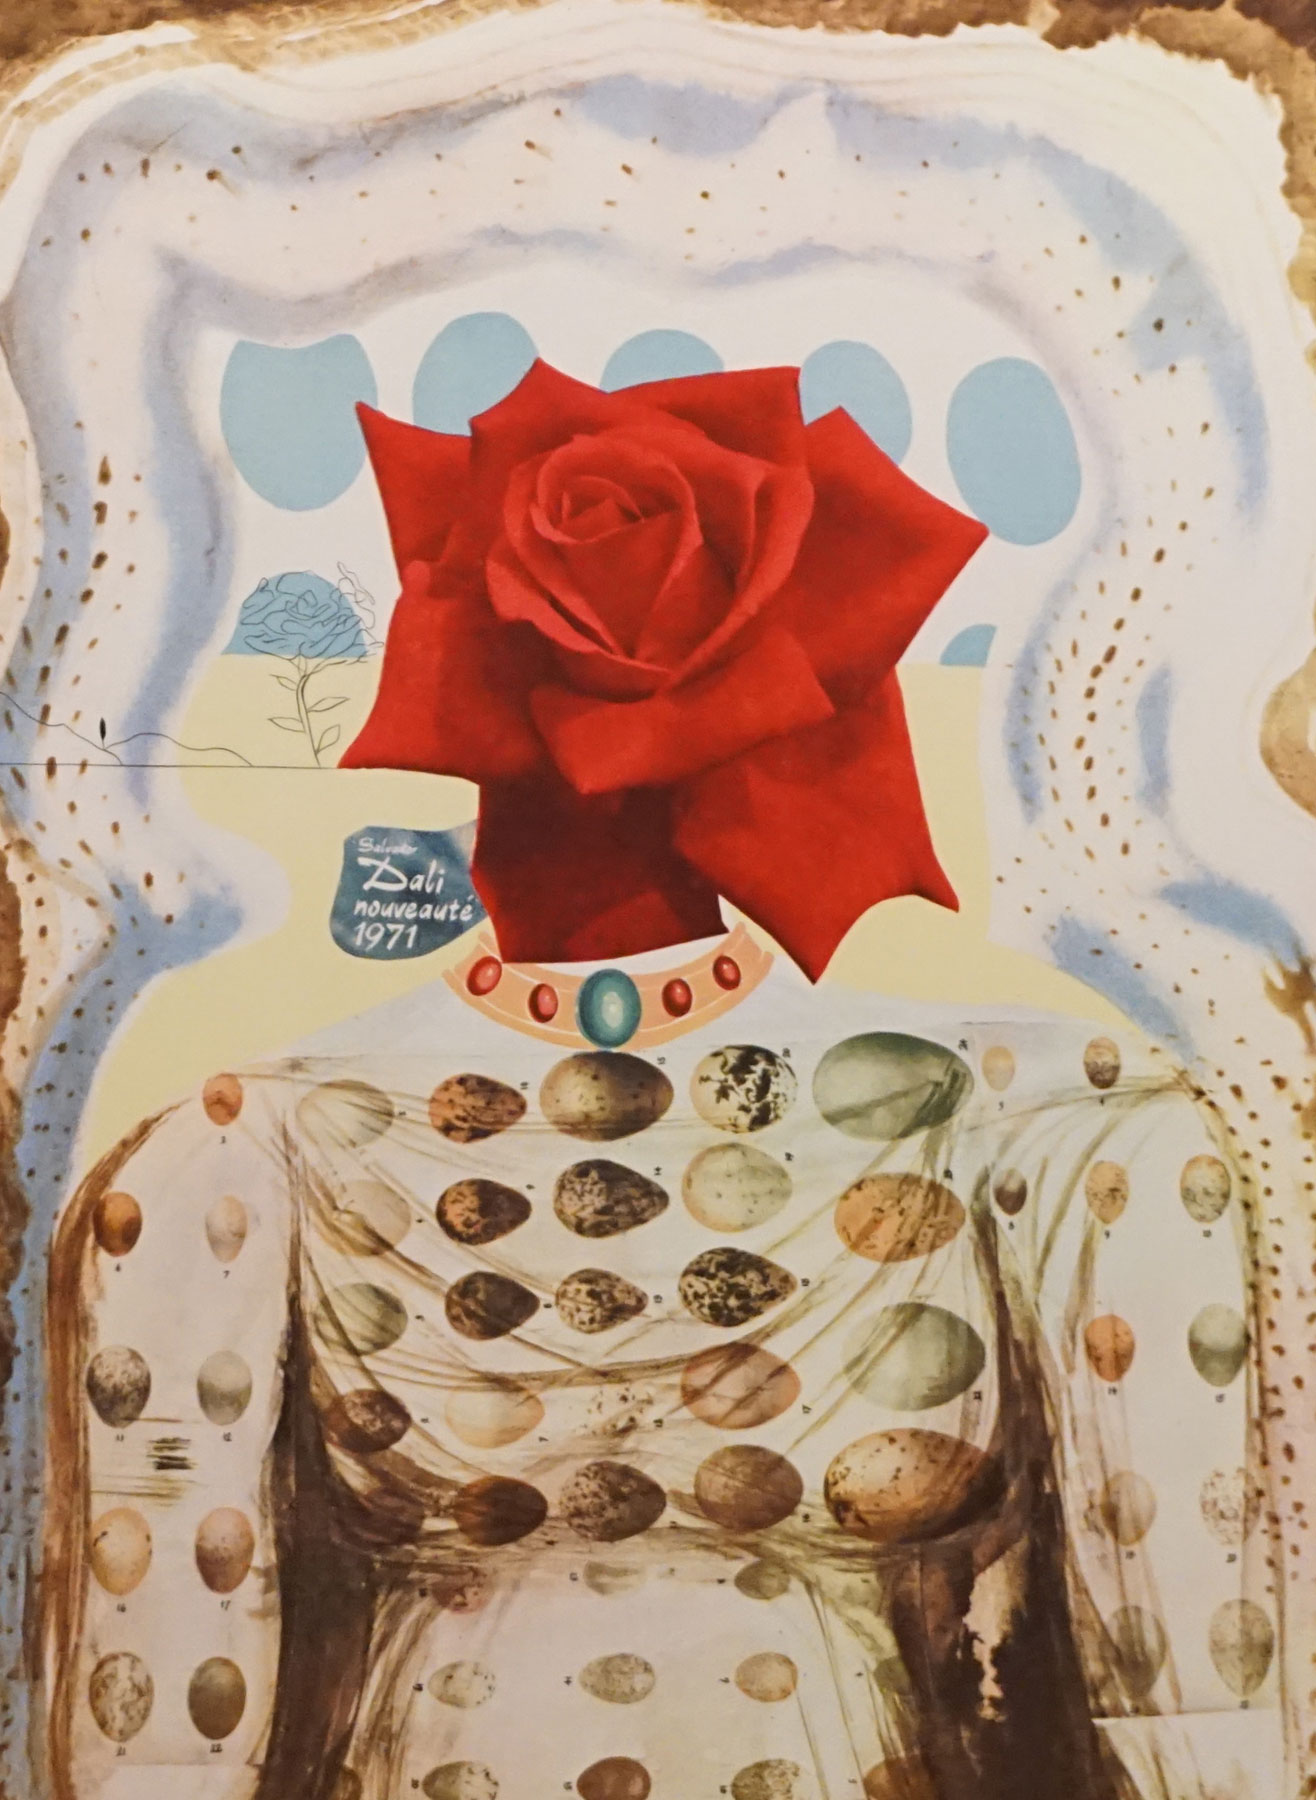 Memories of Surrealism Surrealist Flower Girl 1971